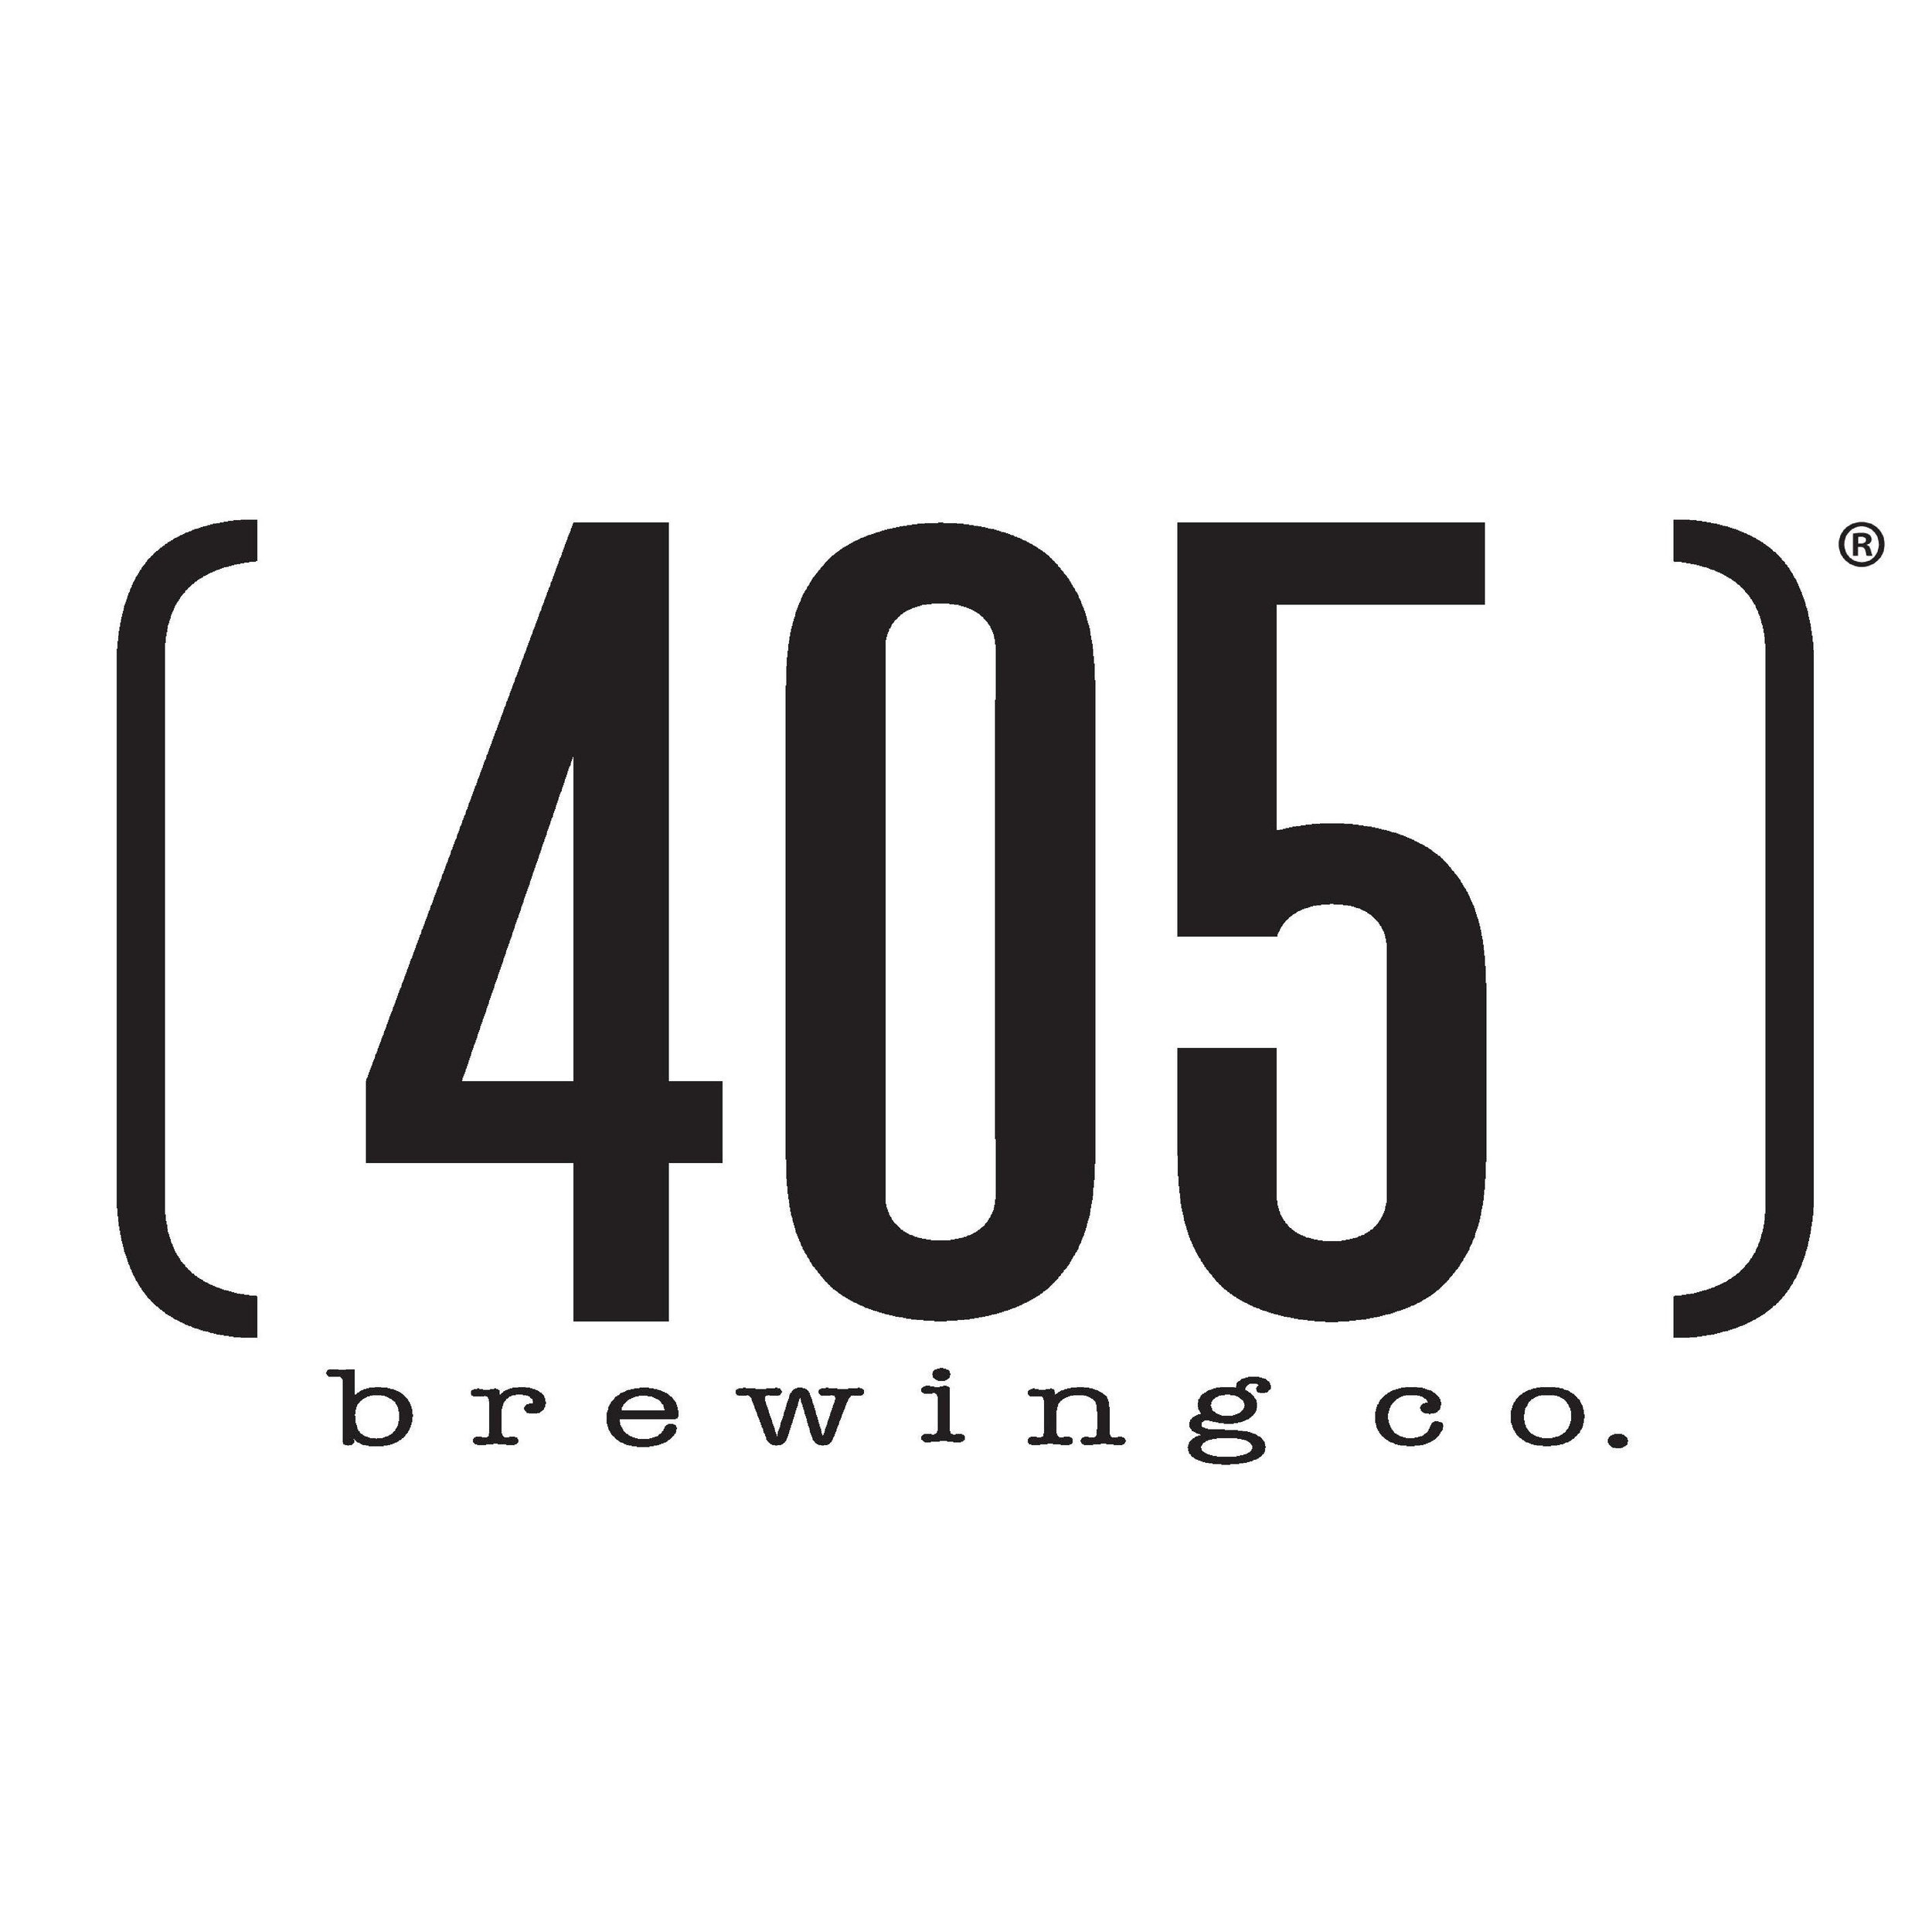 (405) Brewing Co. - 1716 Topeka St.Norman, OK 73069Taproom Hours:Sun CLOSEDMon 4-9 pmTues CLOSEDWed CLOSEDThur 4-9 pmFri 4-9 pmSat 2-7 pm